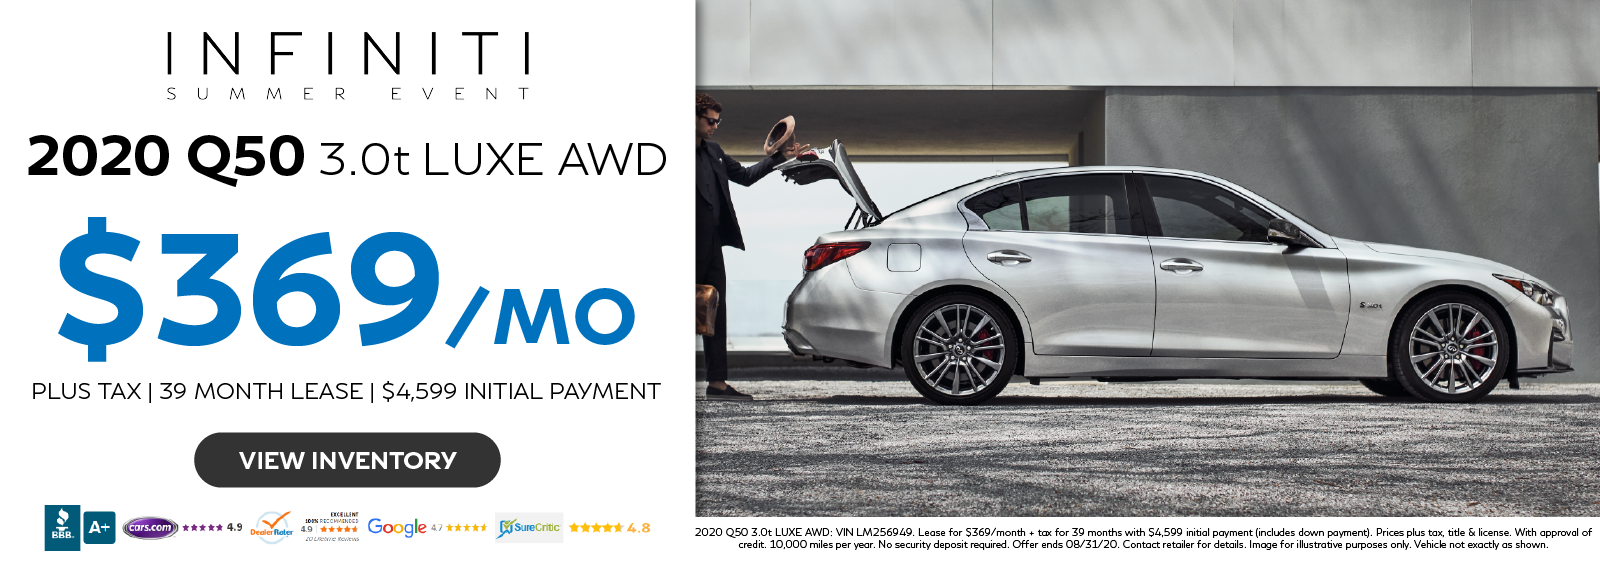 Lease the 2020 Q50 3.0t LUXE AWD for $369 per month for 39 months. Click to view inventory.